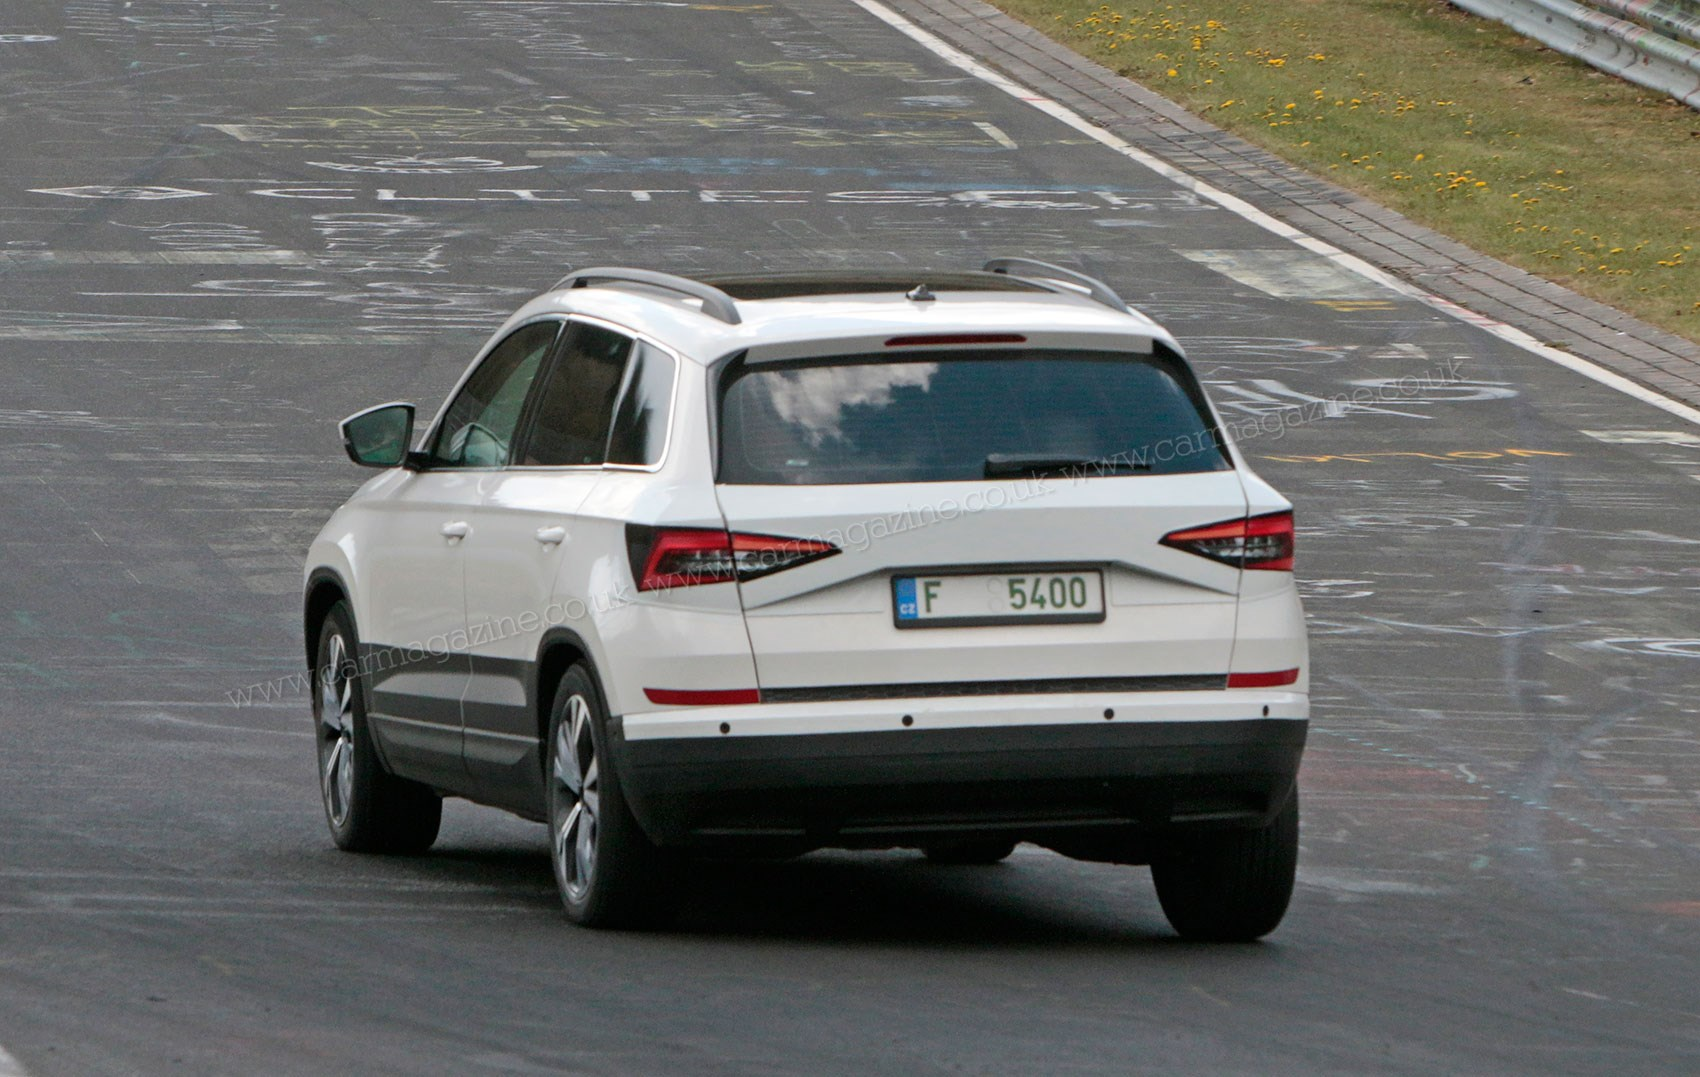 Skoda Karoq mini SUV revealed: spy photos by CAR Magazine